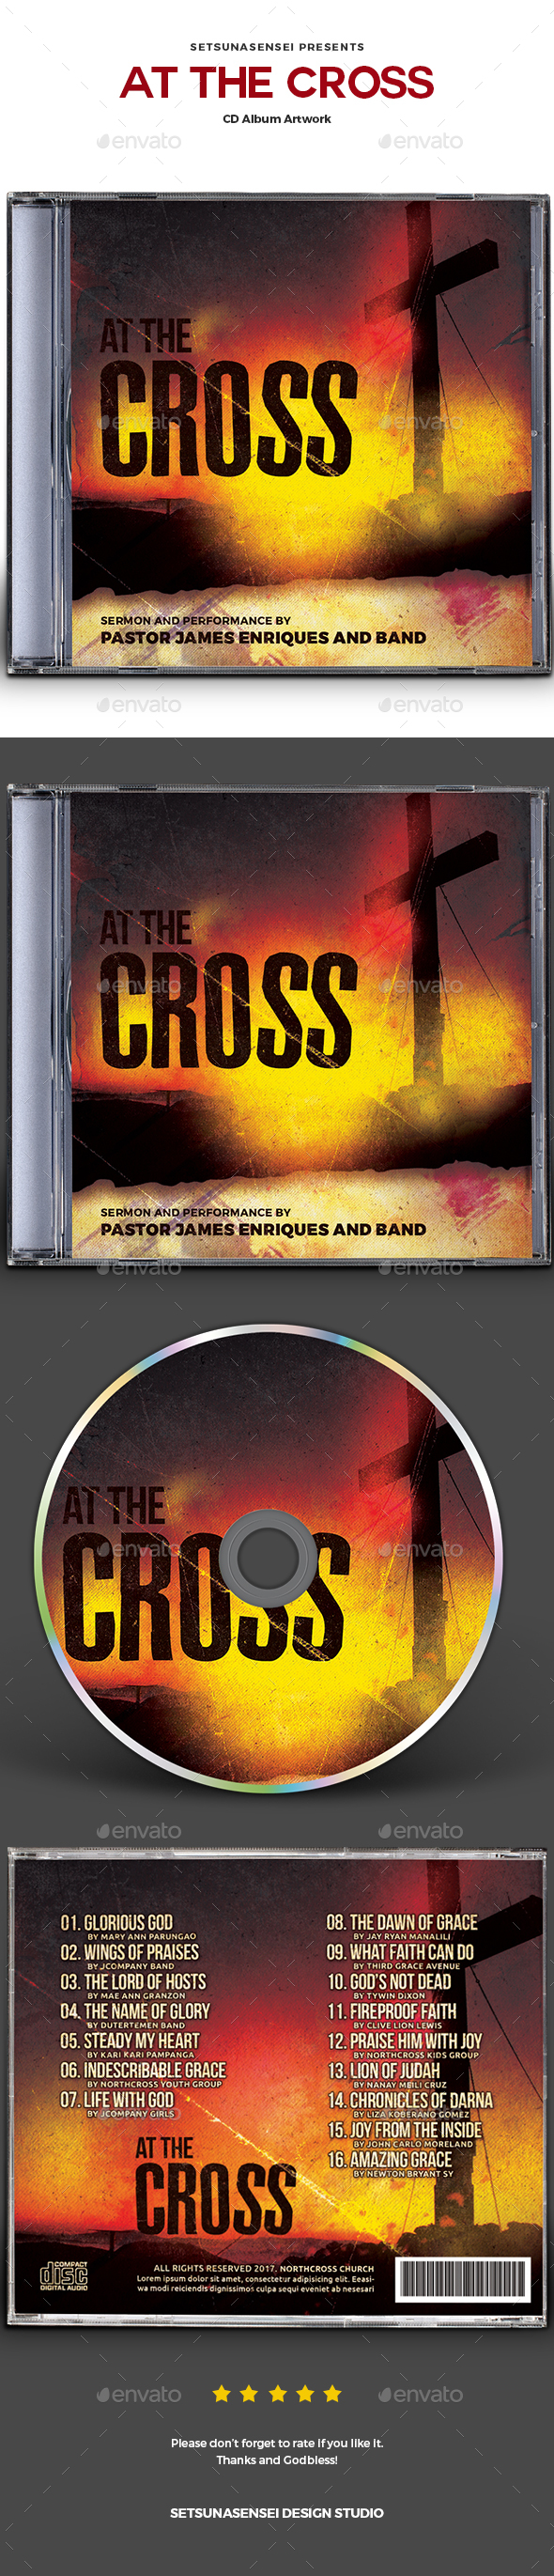 At the Cross CD Album Artwork - CD & DVD Artwork Print Templates